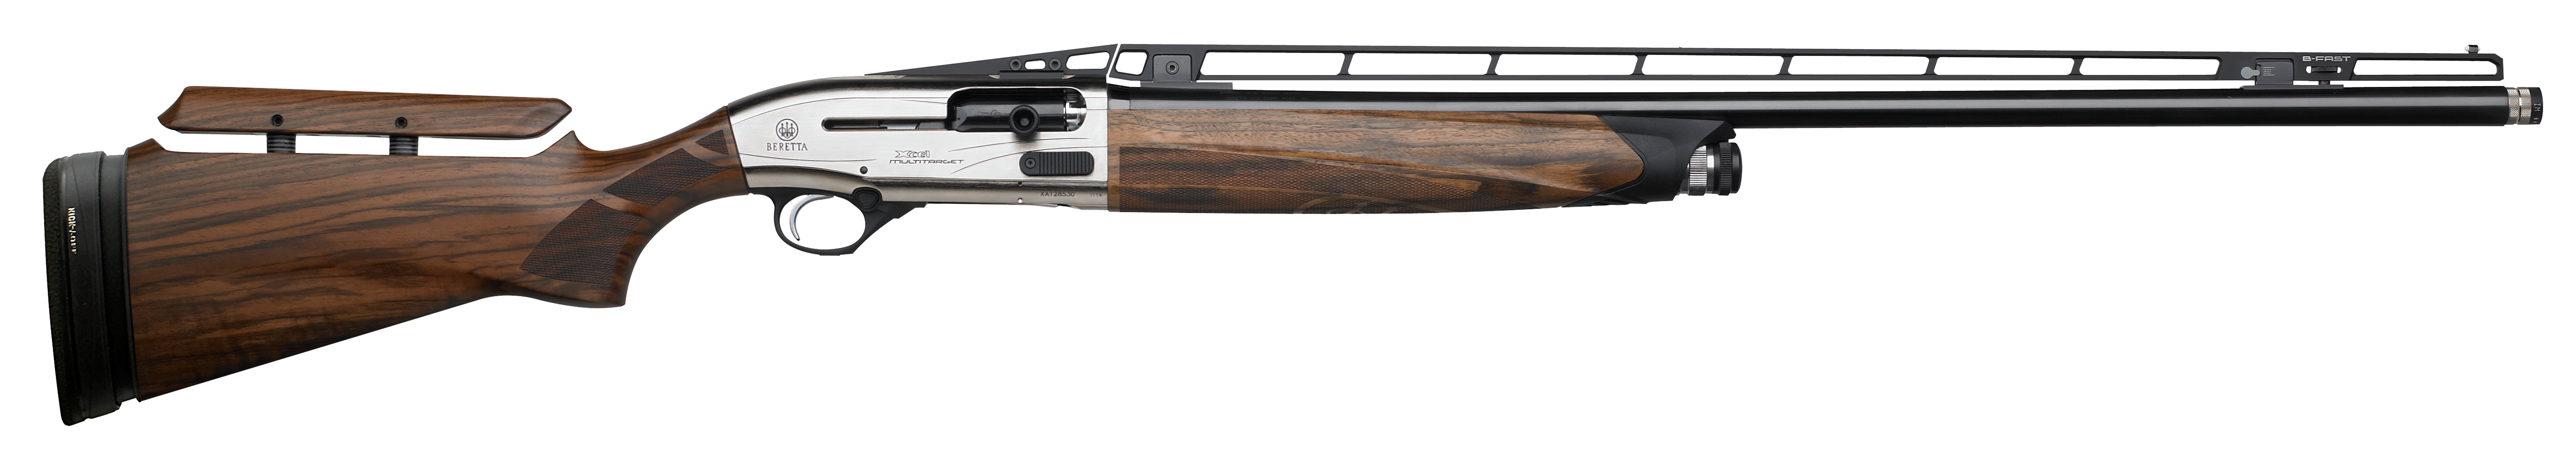 Beretta A400 Xcel Multitarget Semi-Auto Shotgun 3'' 12 Gauge 32'' Silver Anodized - Walnut Adjustable